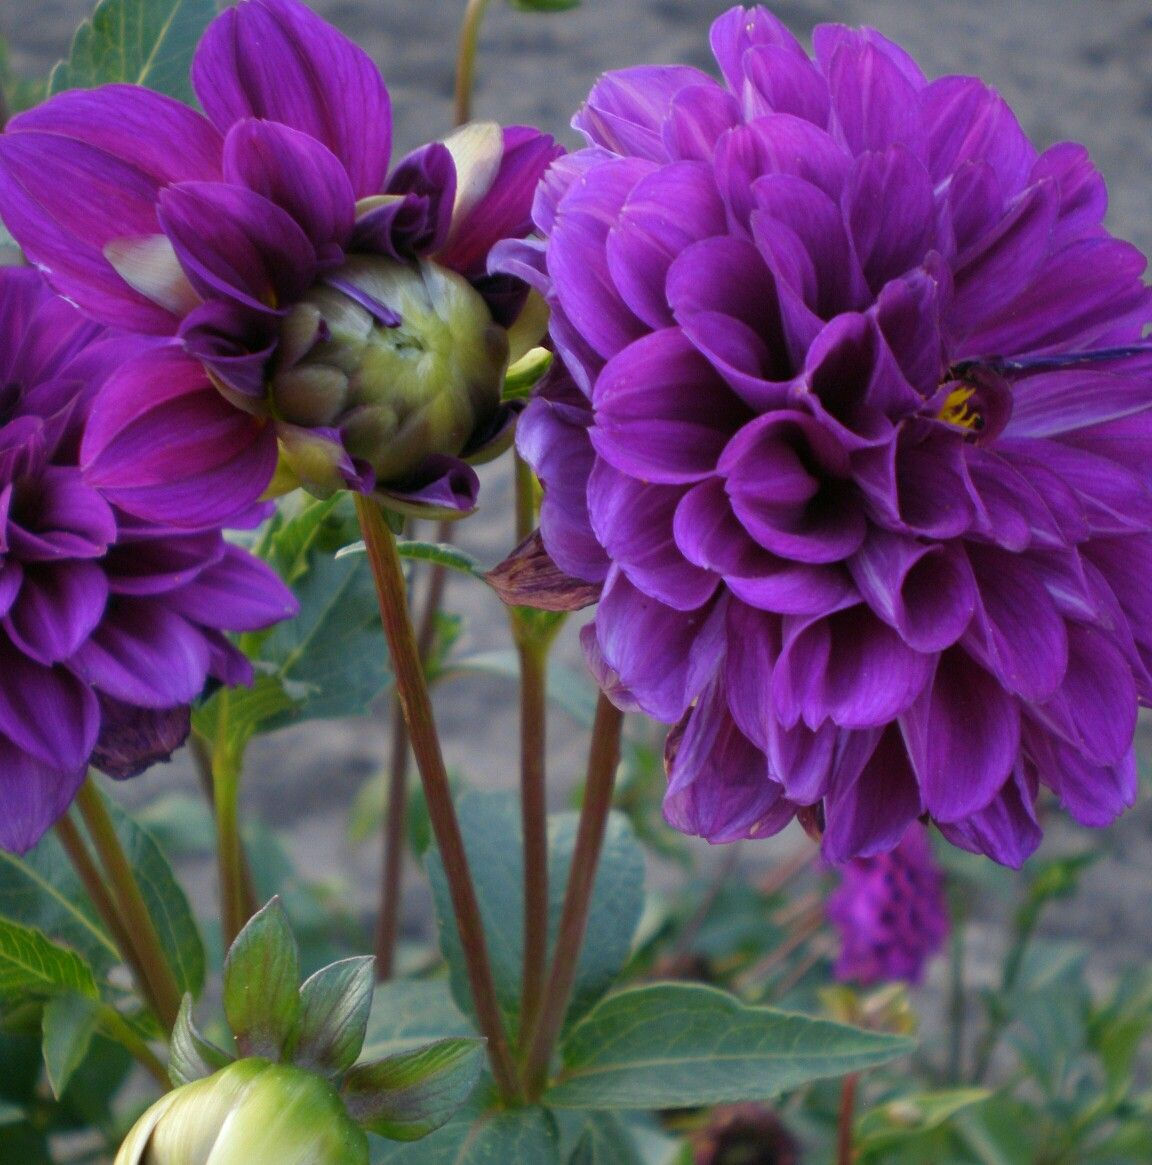 Pin by mary j on kwiaty pinterest flowers dahlia and gardens coloring book purple things flower photos daisies dahlia pretty flowers pictures floral gardening izmirmasajfo